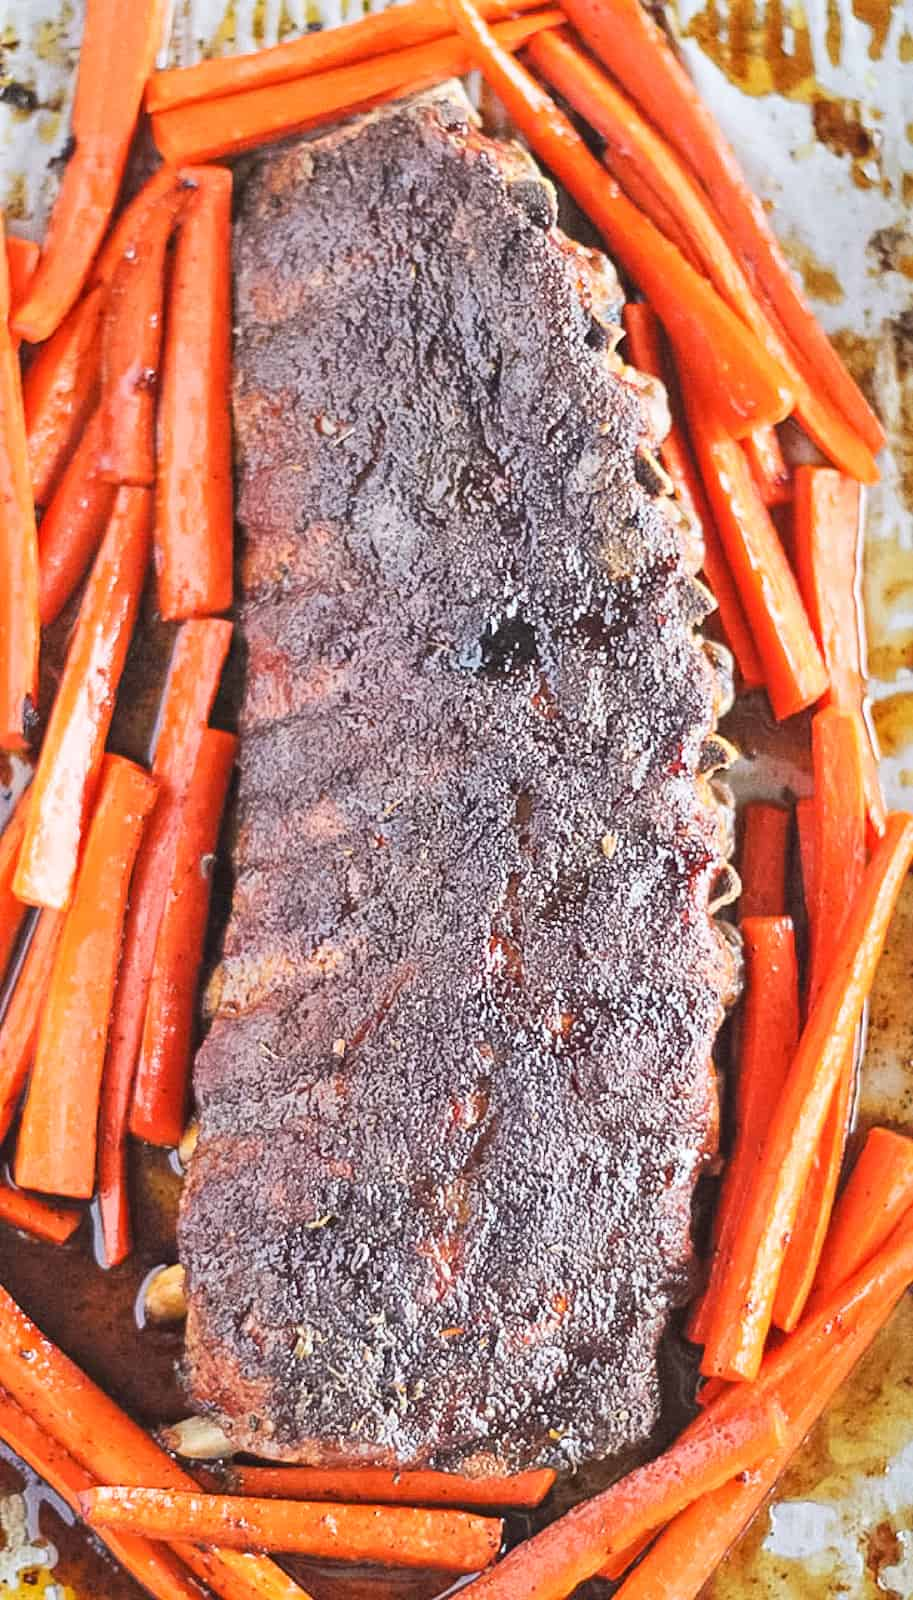 Dry rubbed caramelized rack of ribs on a sheet pan with carrots.